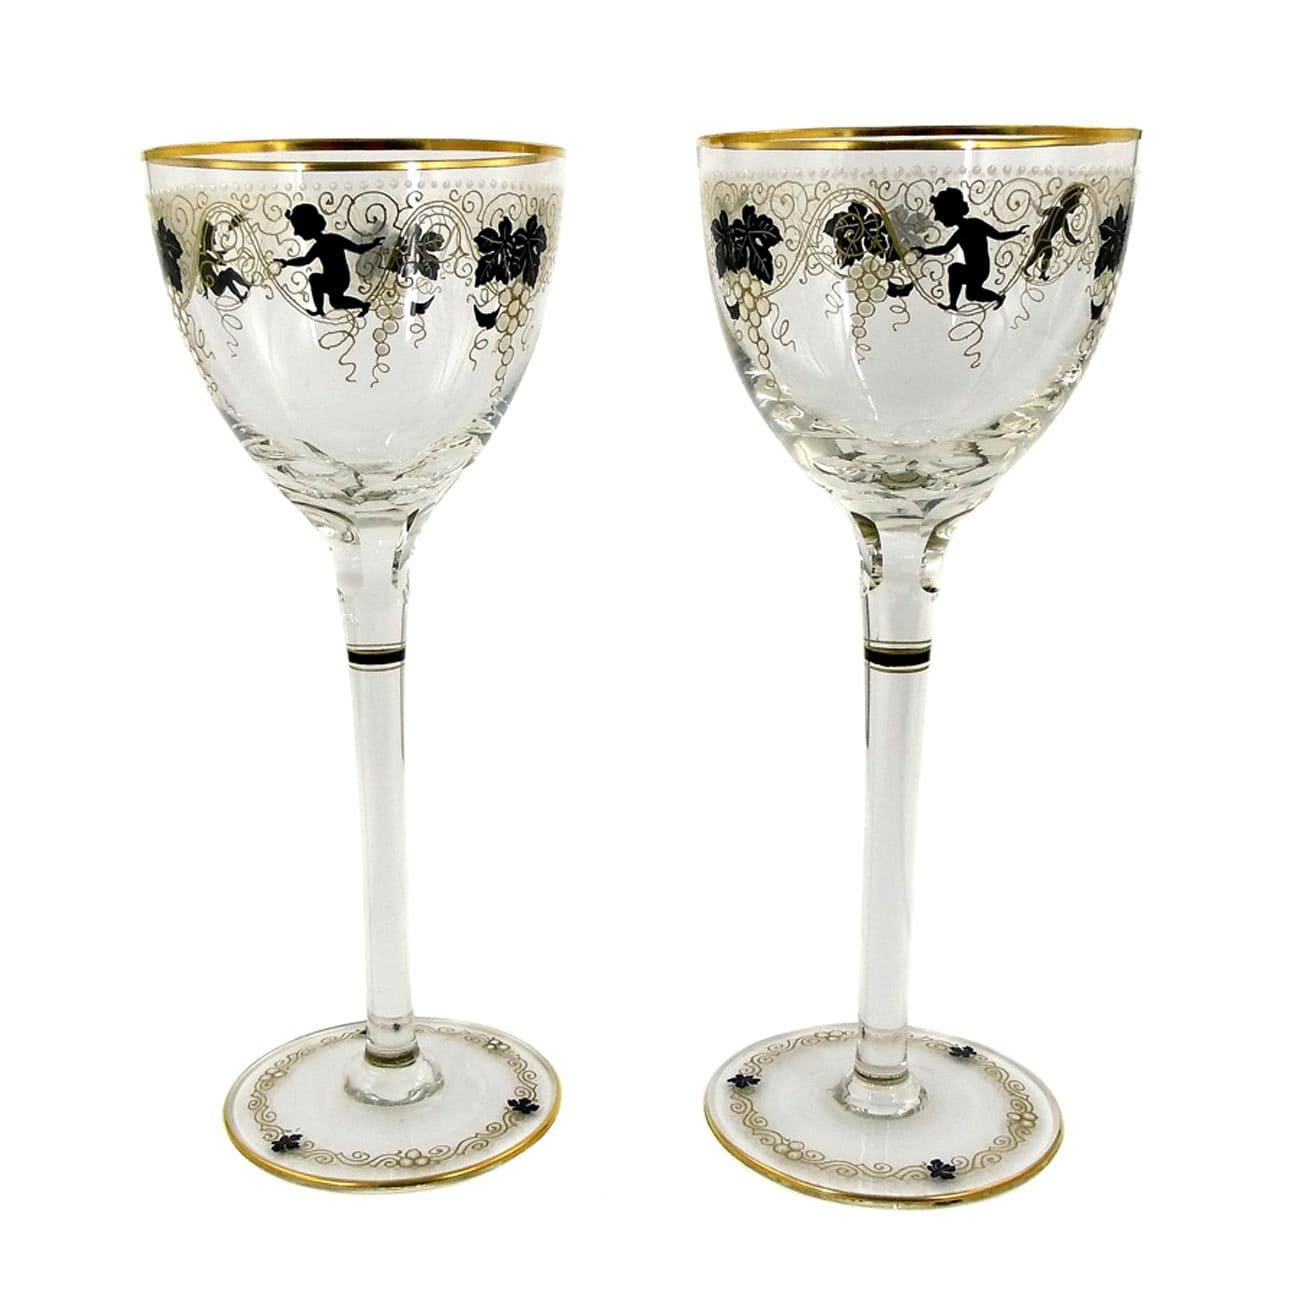 1 of 2 Stem glasses with gold and enamel painting, Josephine